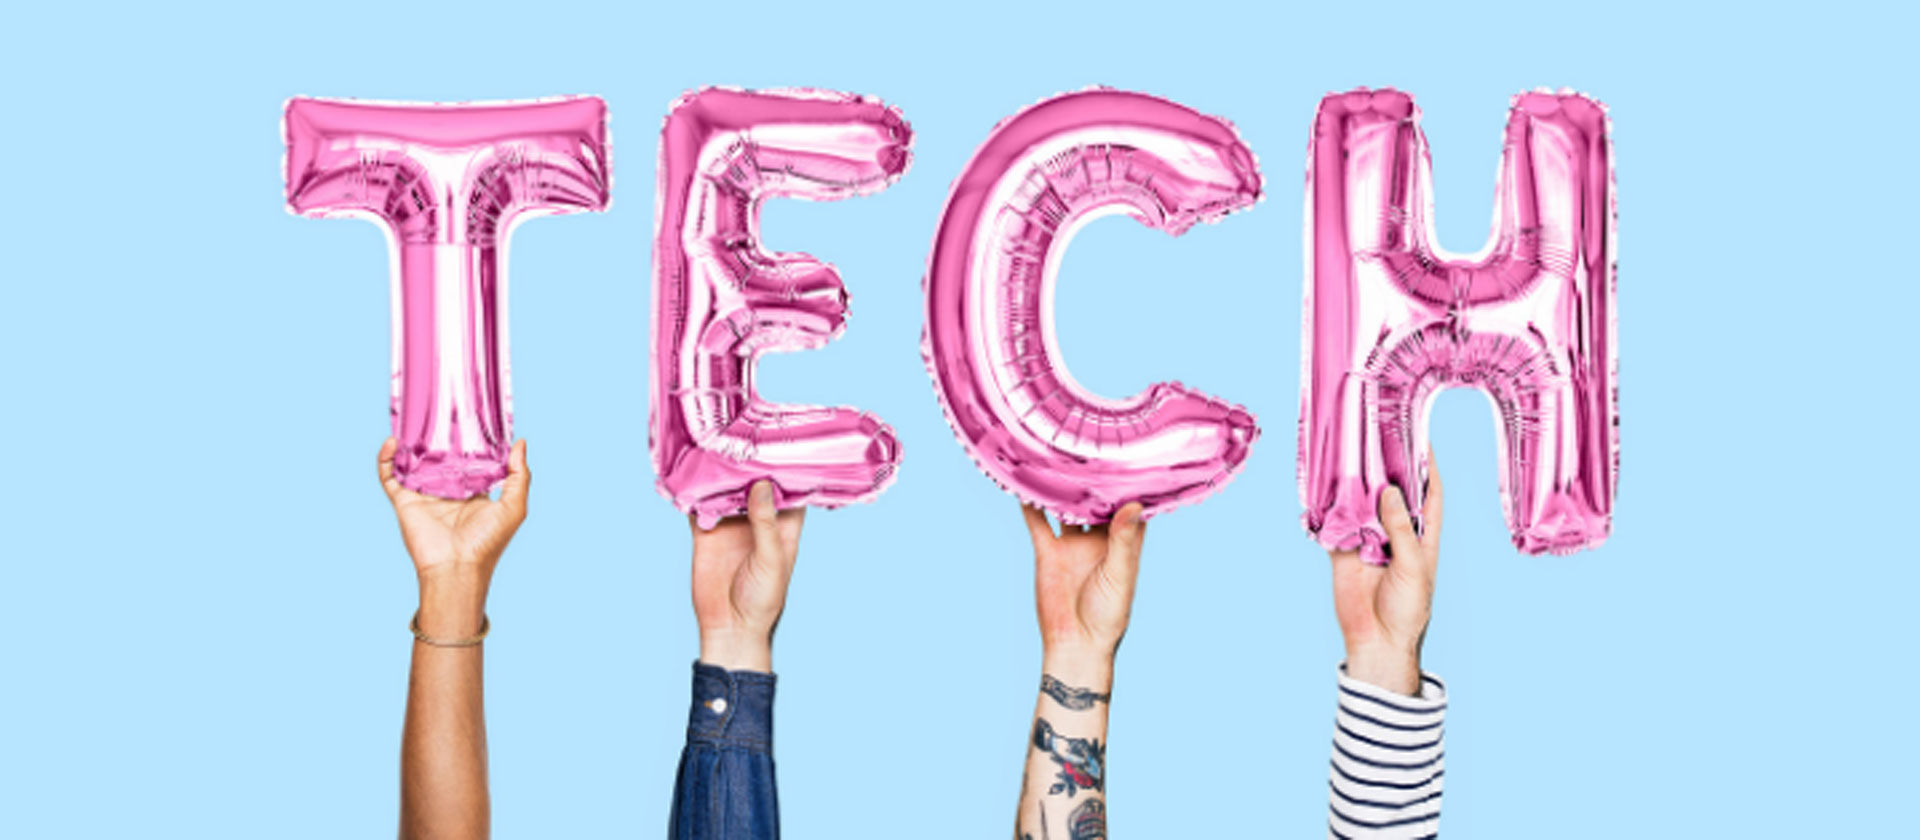 Four balloons forming the word tech